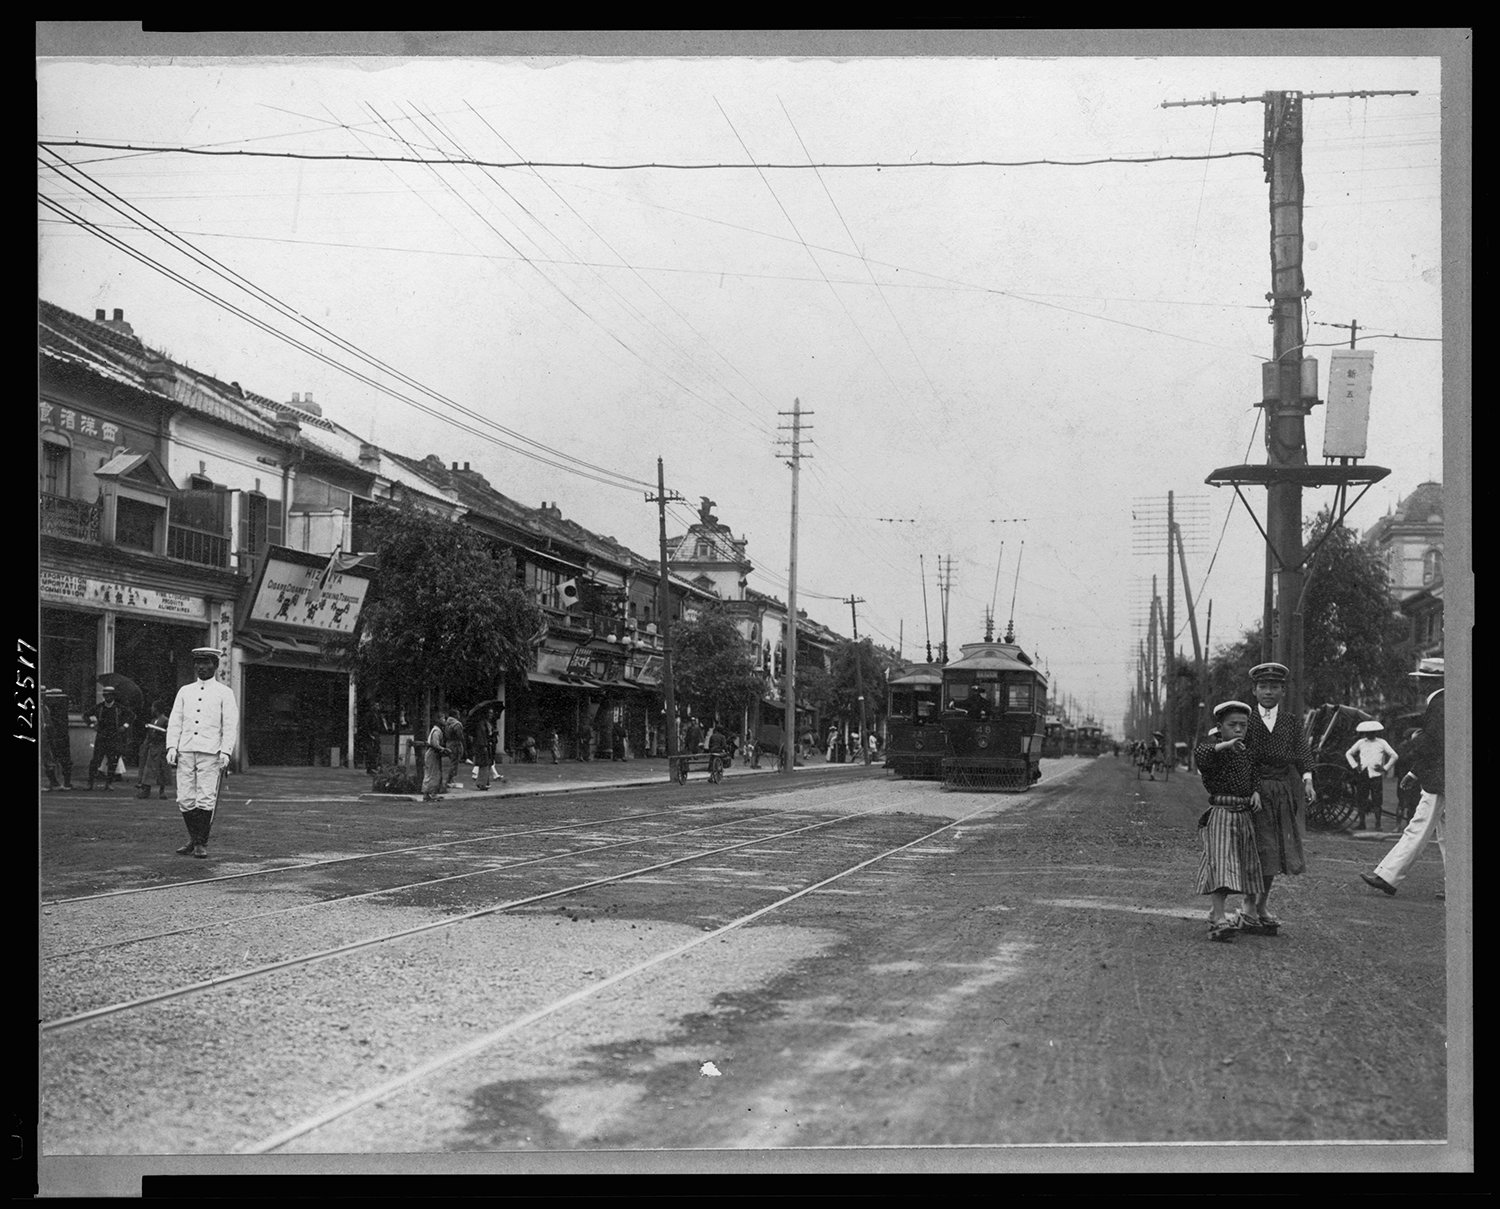 Street scene in Tokyo, c. 1905. Notice the utility poles and the streetcars in the background. This photograph was taken over a decade after Bly's visit to Japan, but it reflects many of her observations about technology and changing customs. Courtesy of the Library of Congress.